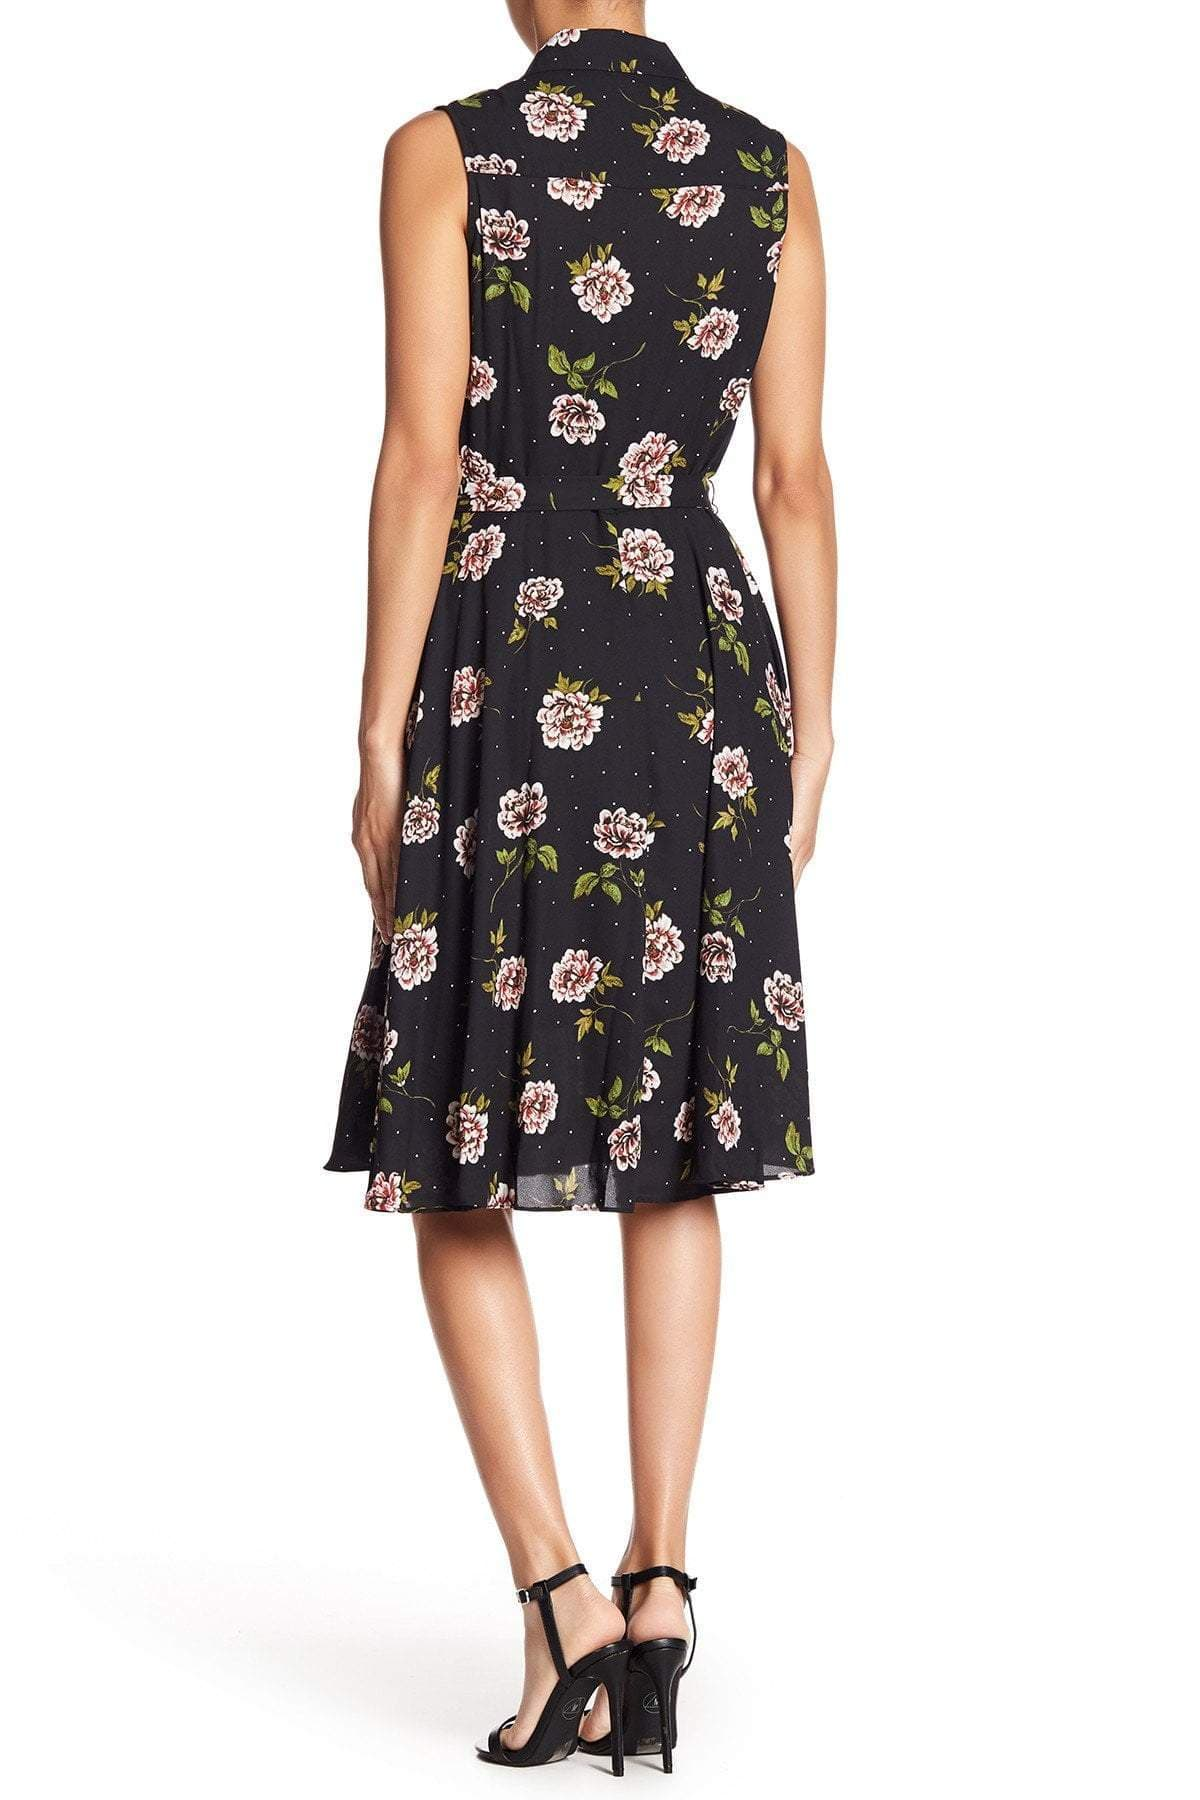 Nanette Nanette Lepo - NM8S171J3 Pleated Floral Print A-line Dress In Black